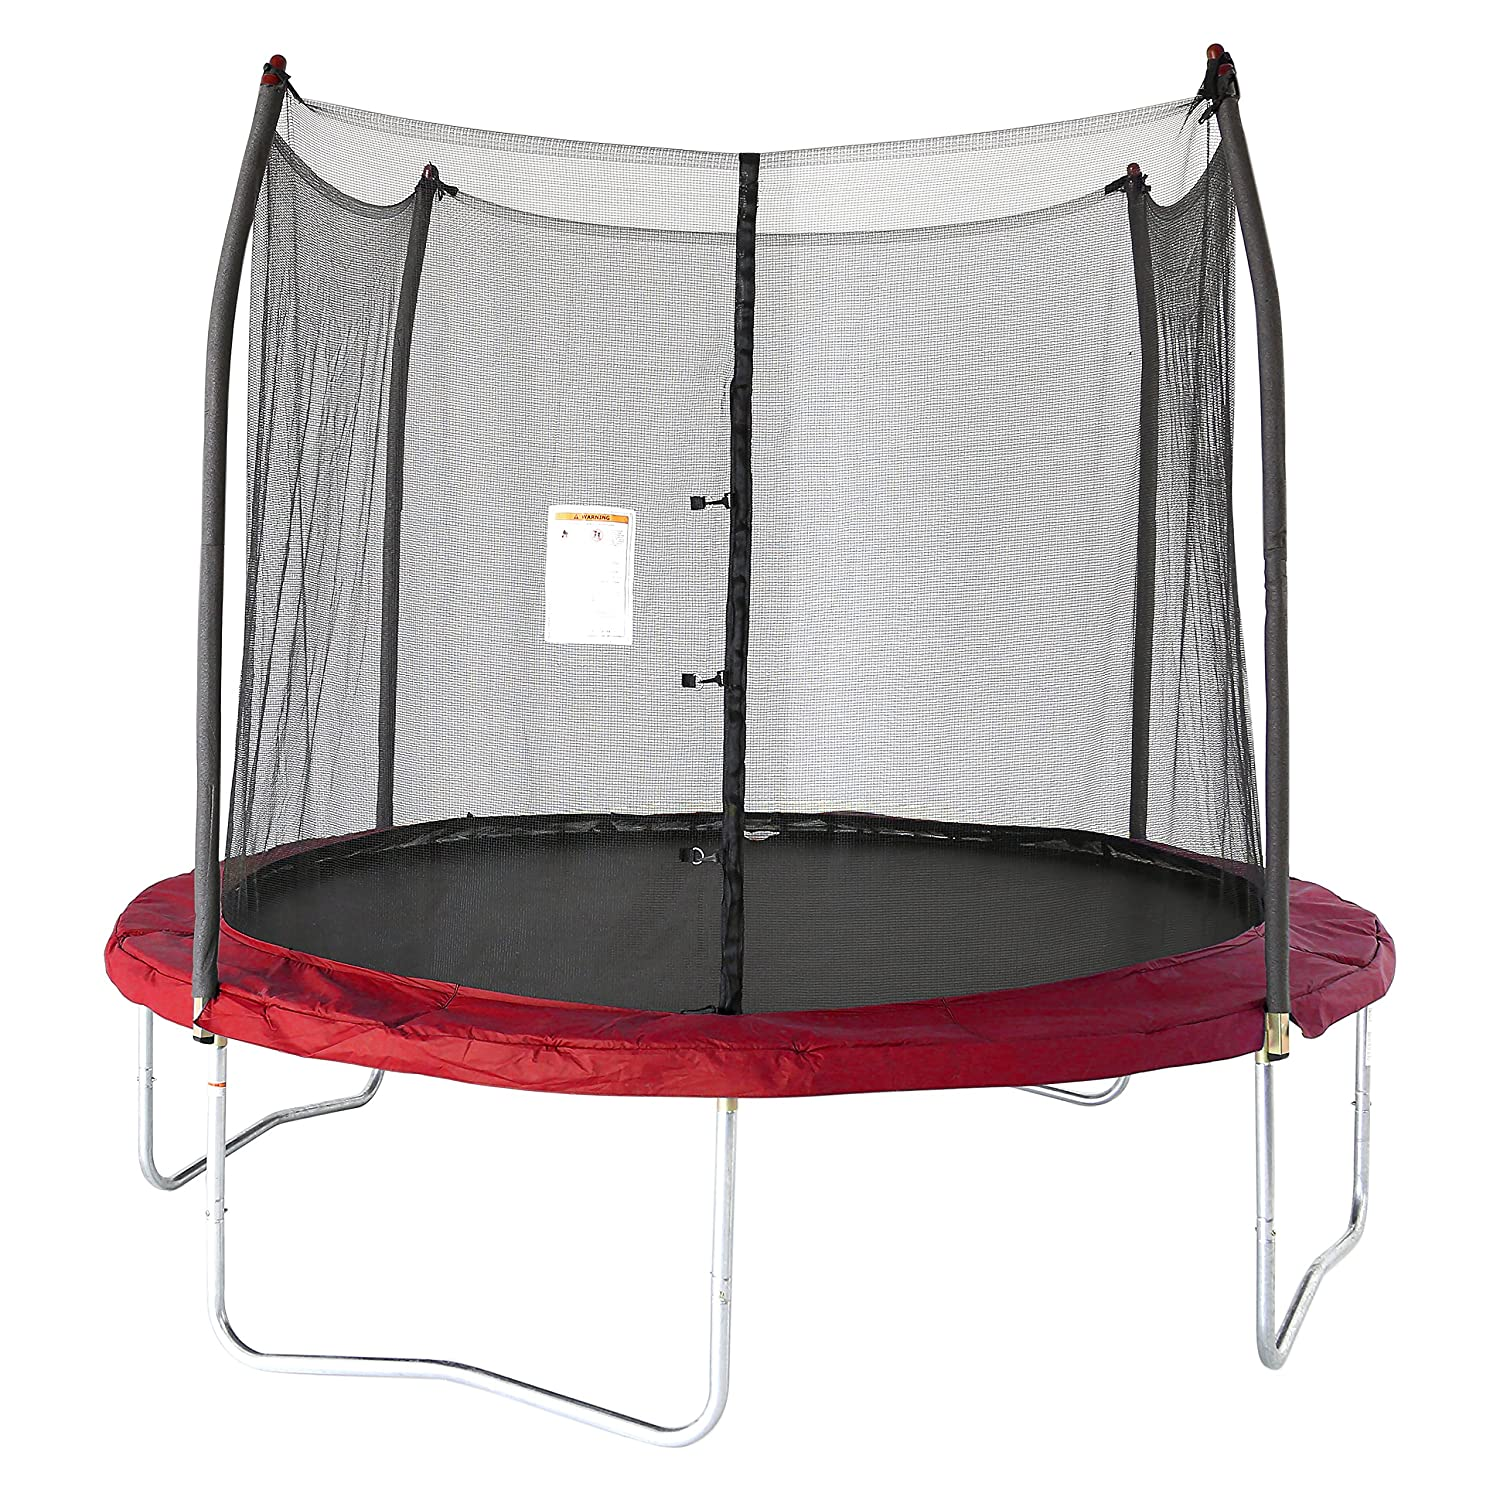 Skywalker Trampolines 10 Ft. Round Trampoline and Enclosoure with Spring SWTC1000